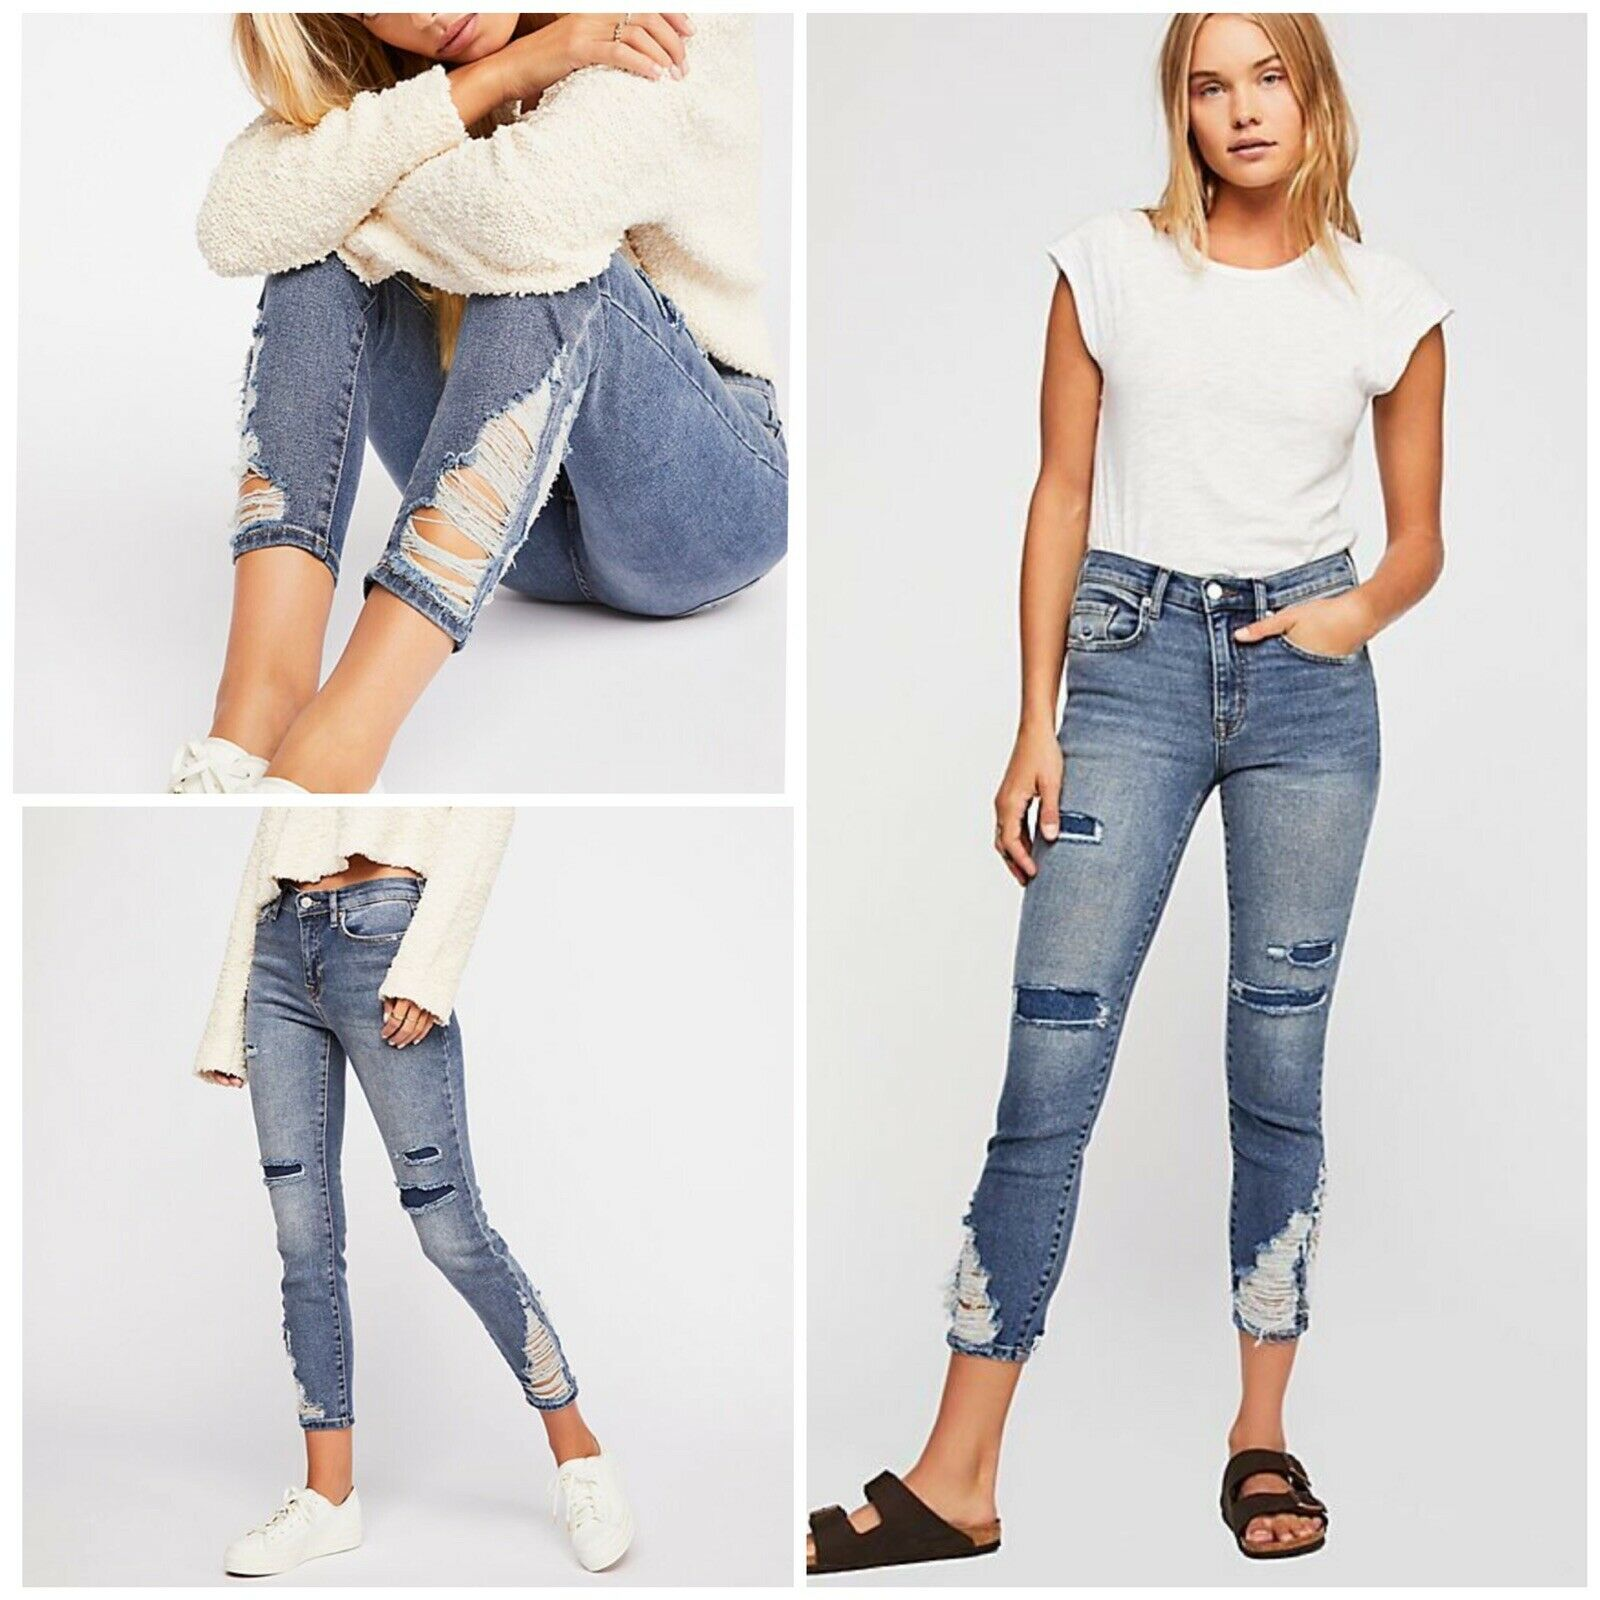 Free People About A Girl High-Rise Skinny Jeans Size 27 NWT